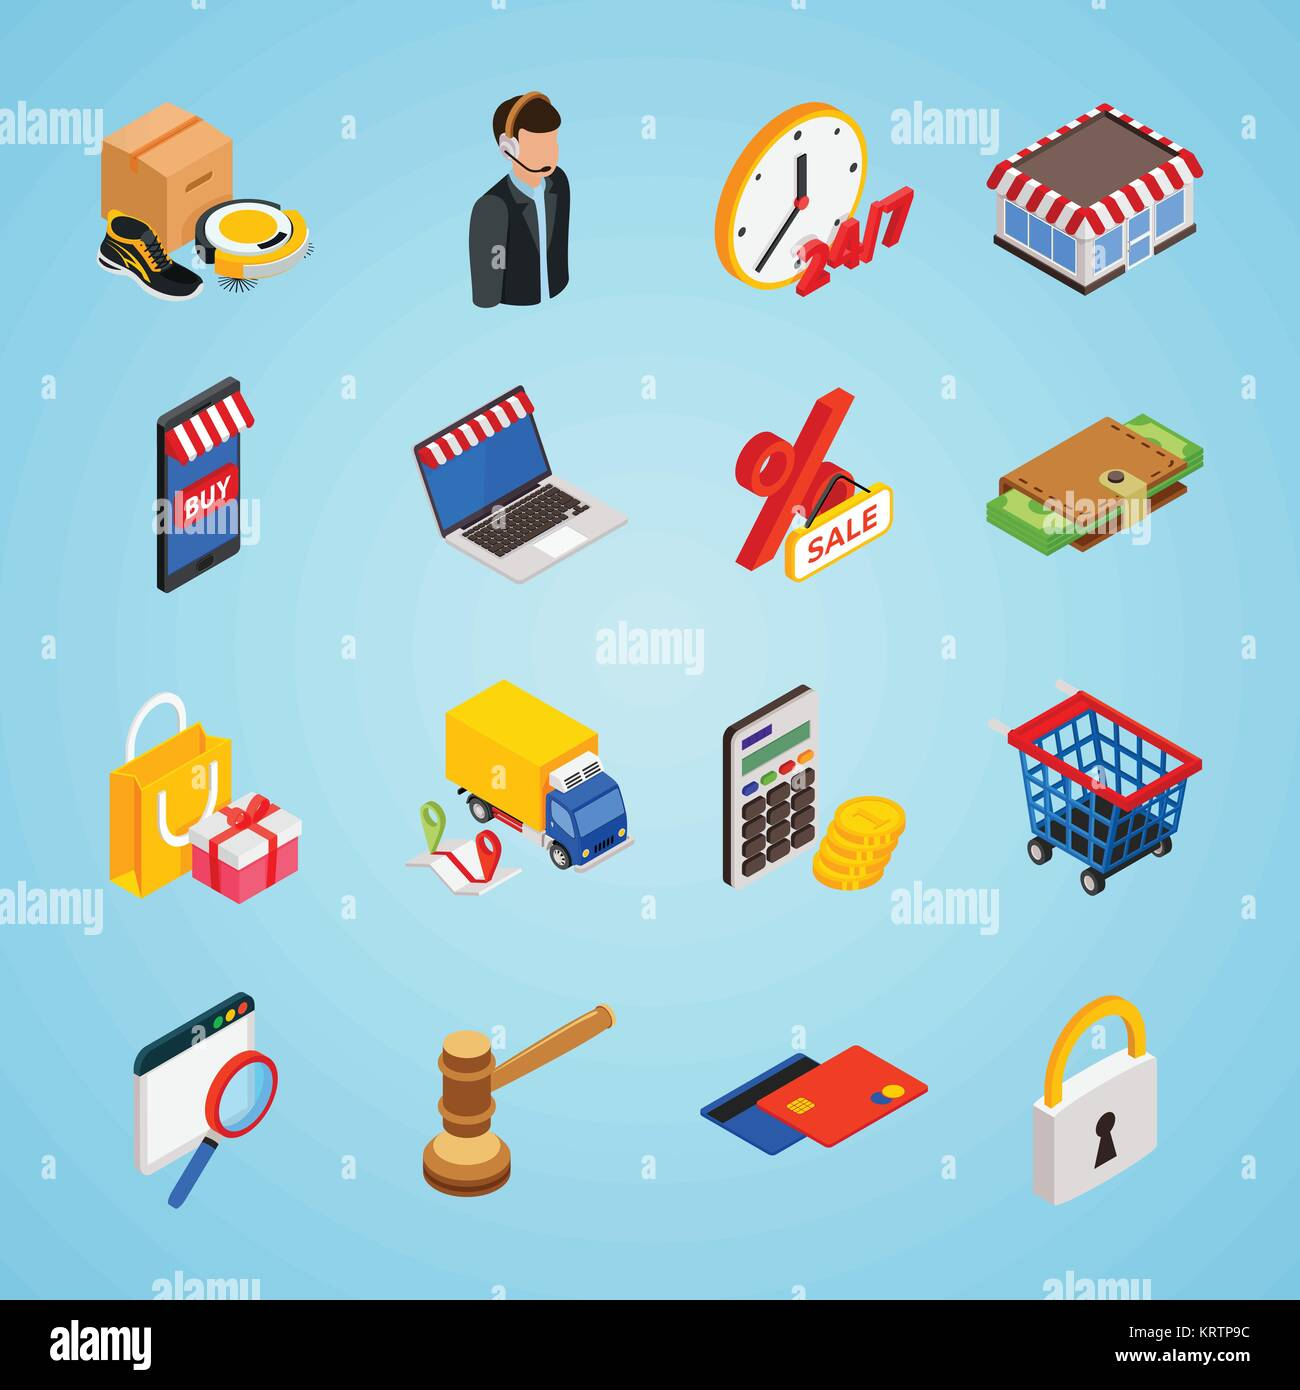 Electronic Commerce Isometric Icon Set With Gadgets For Buying On